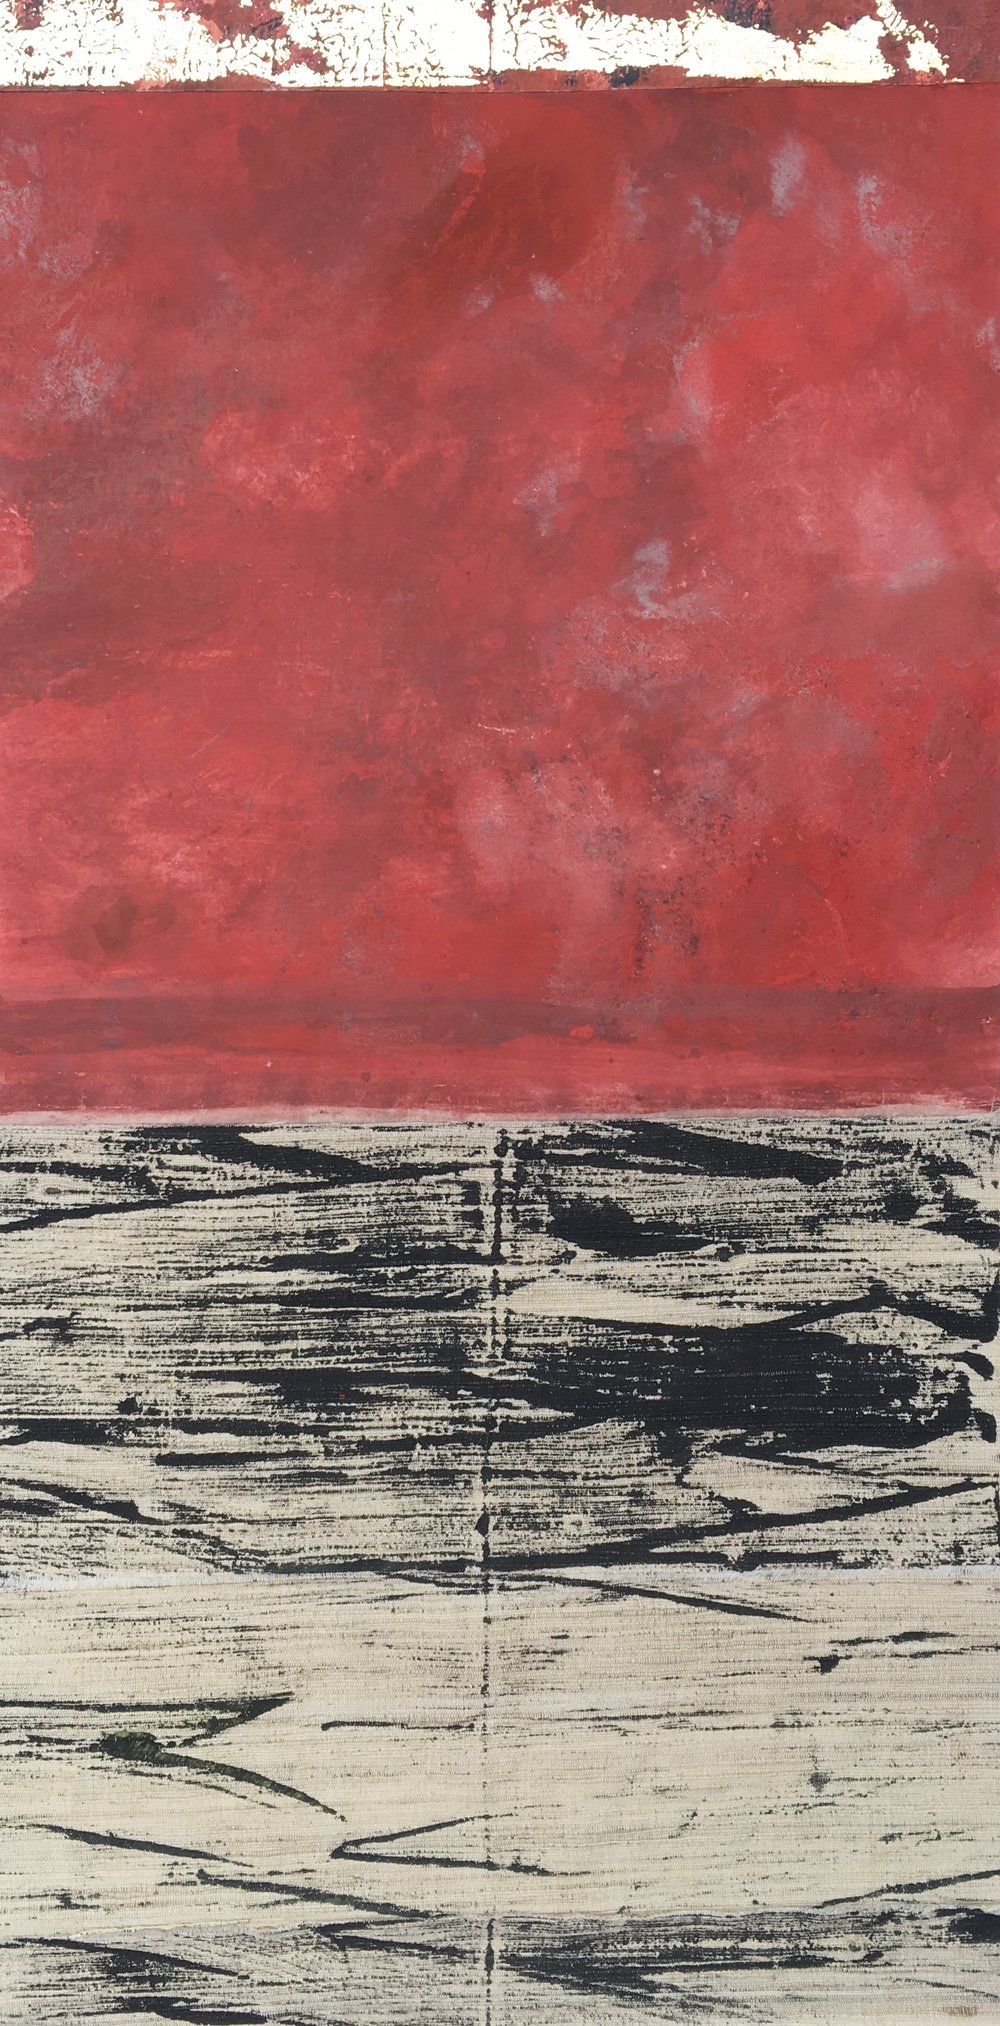 Artist: Alan McLeod  Title: Red Sky  Medium: Gouache & metal-leaf on paper & silk  Size: 55 x 27 cm  Price: £385